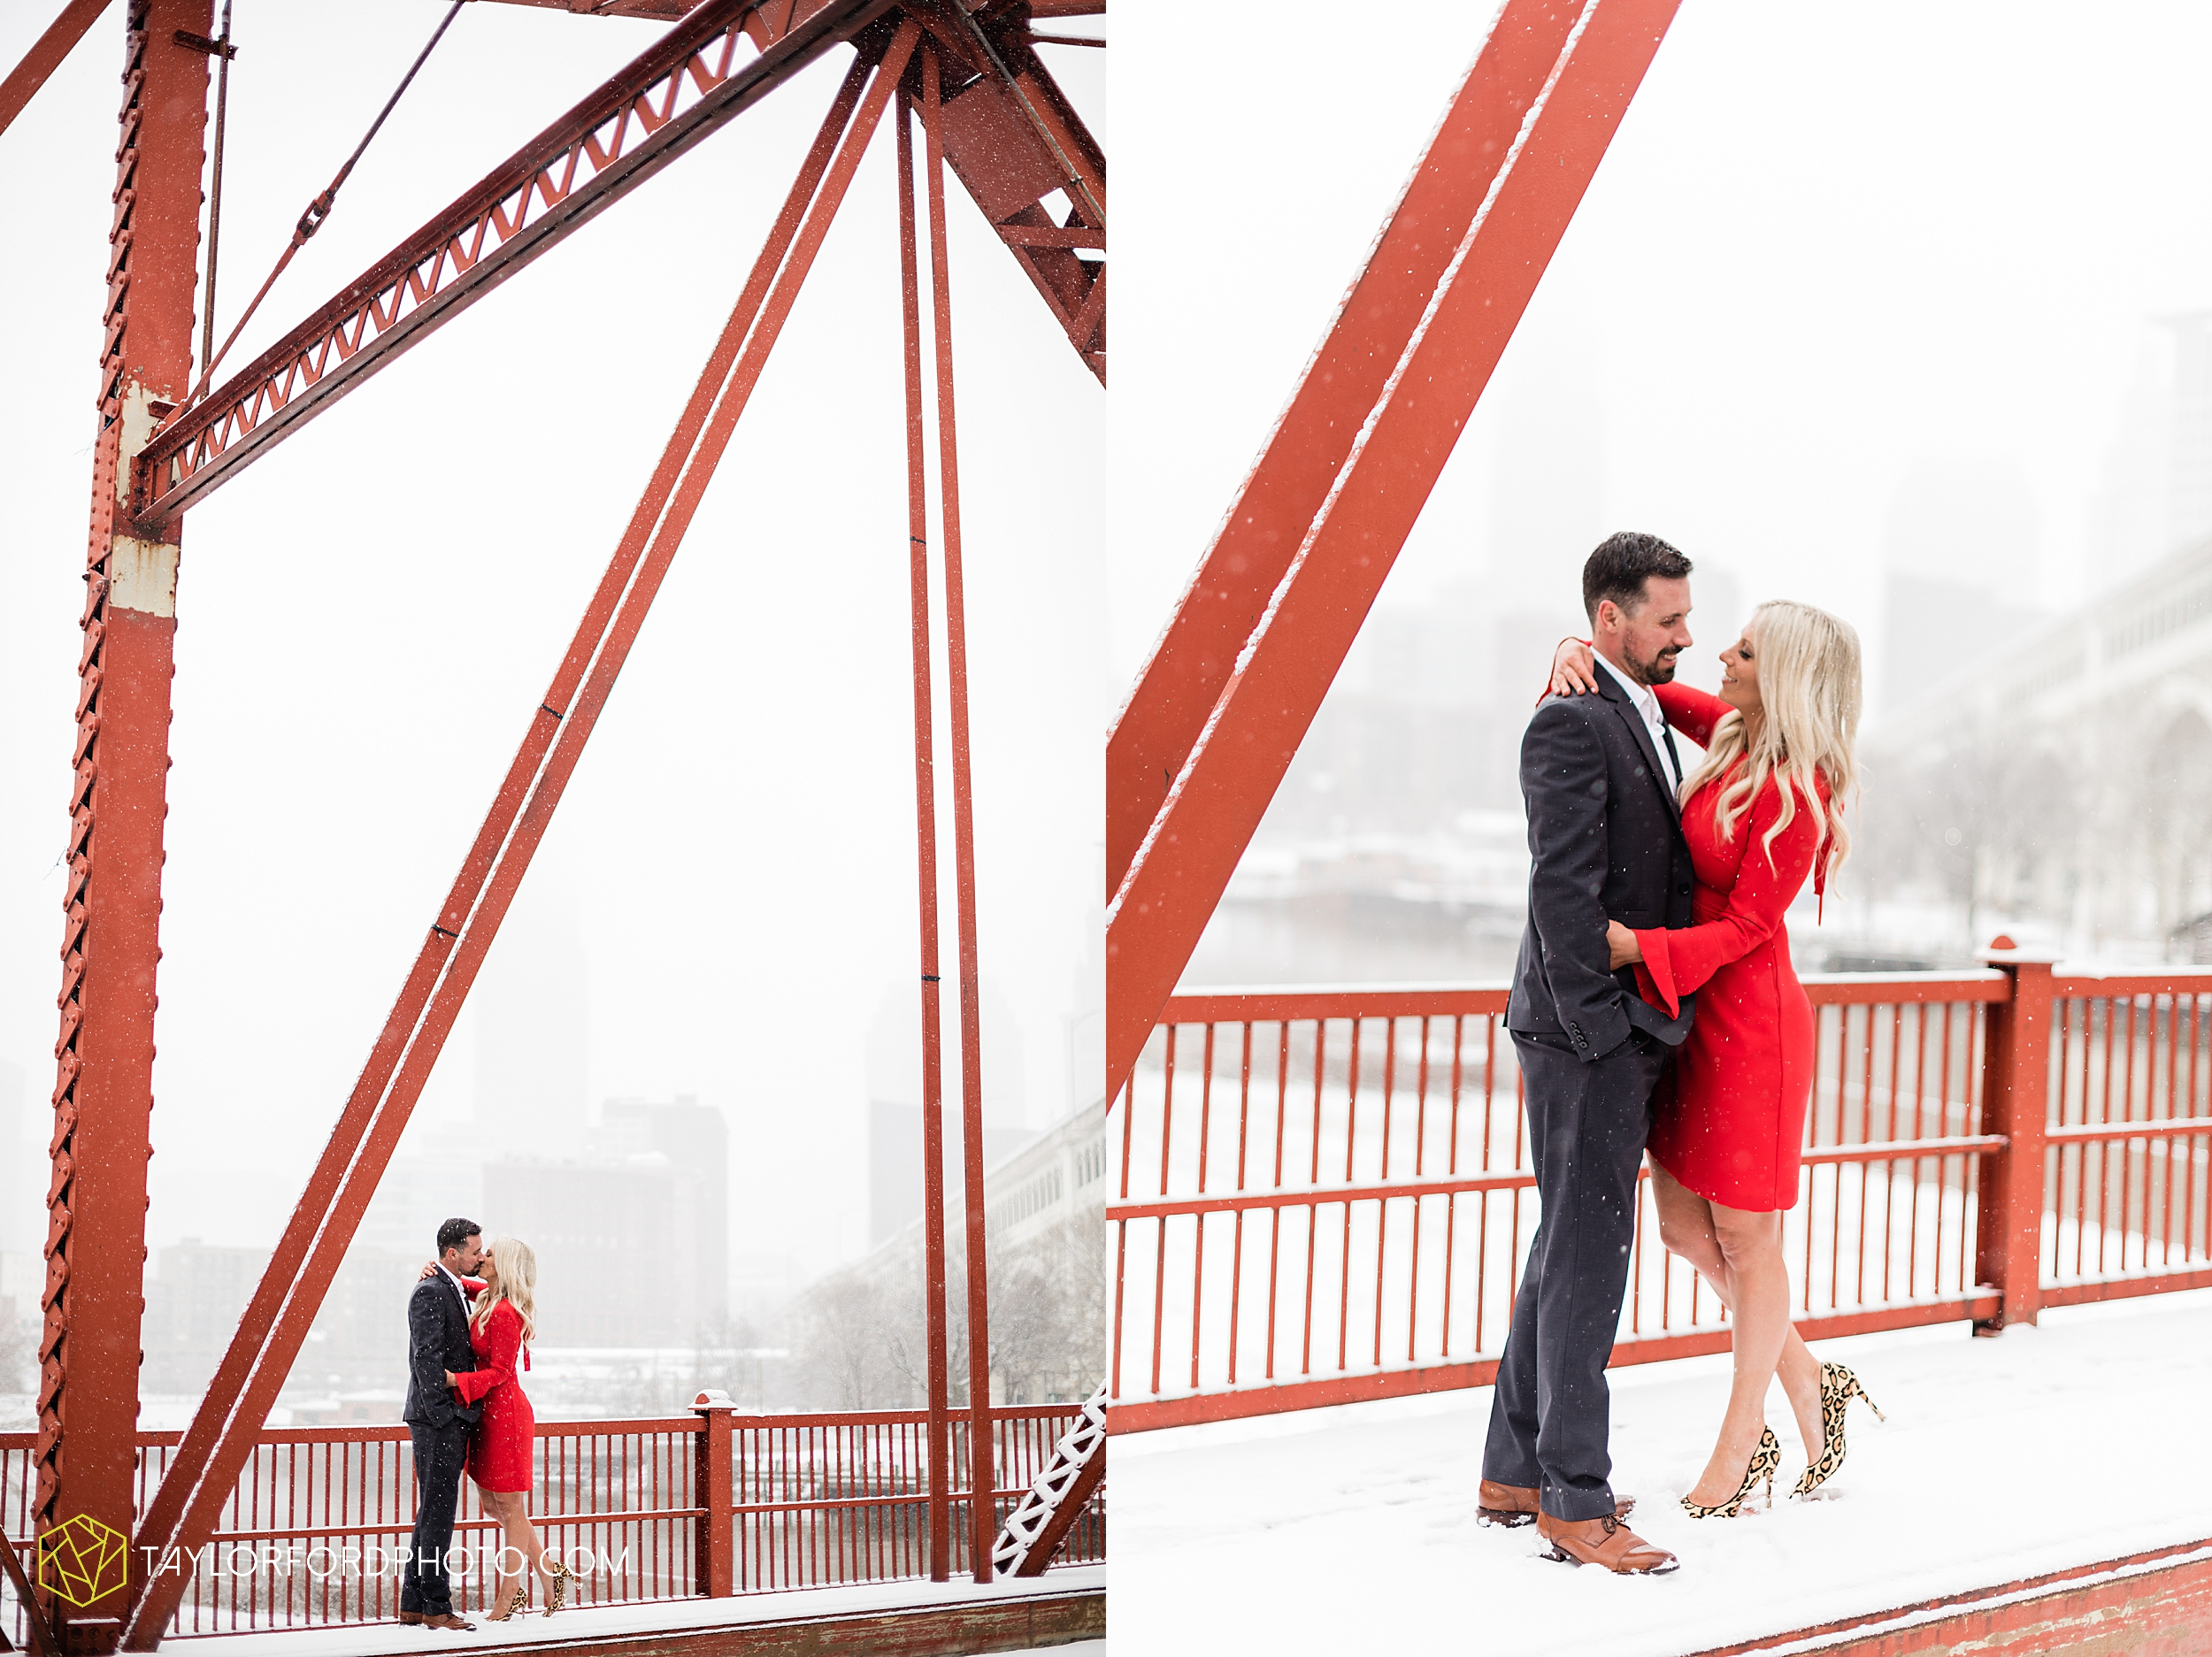 brittany-phil-downtown-cleveland-viaduct-the-flats-east-bank-rocky-river-reservation-engagement-photography-taylor-ford-hirschy-photographer_2431.jpg